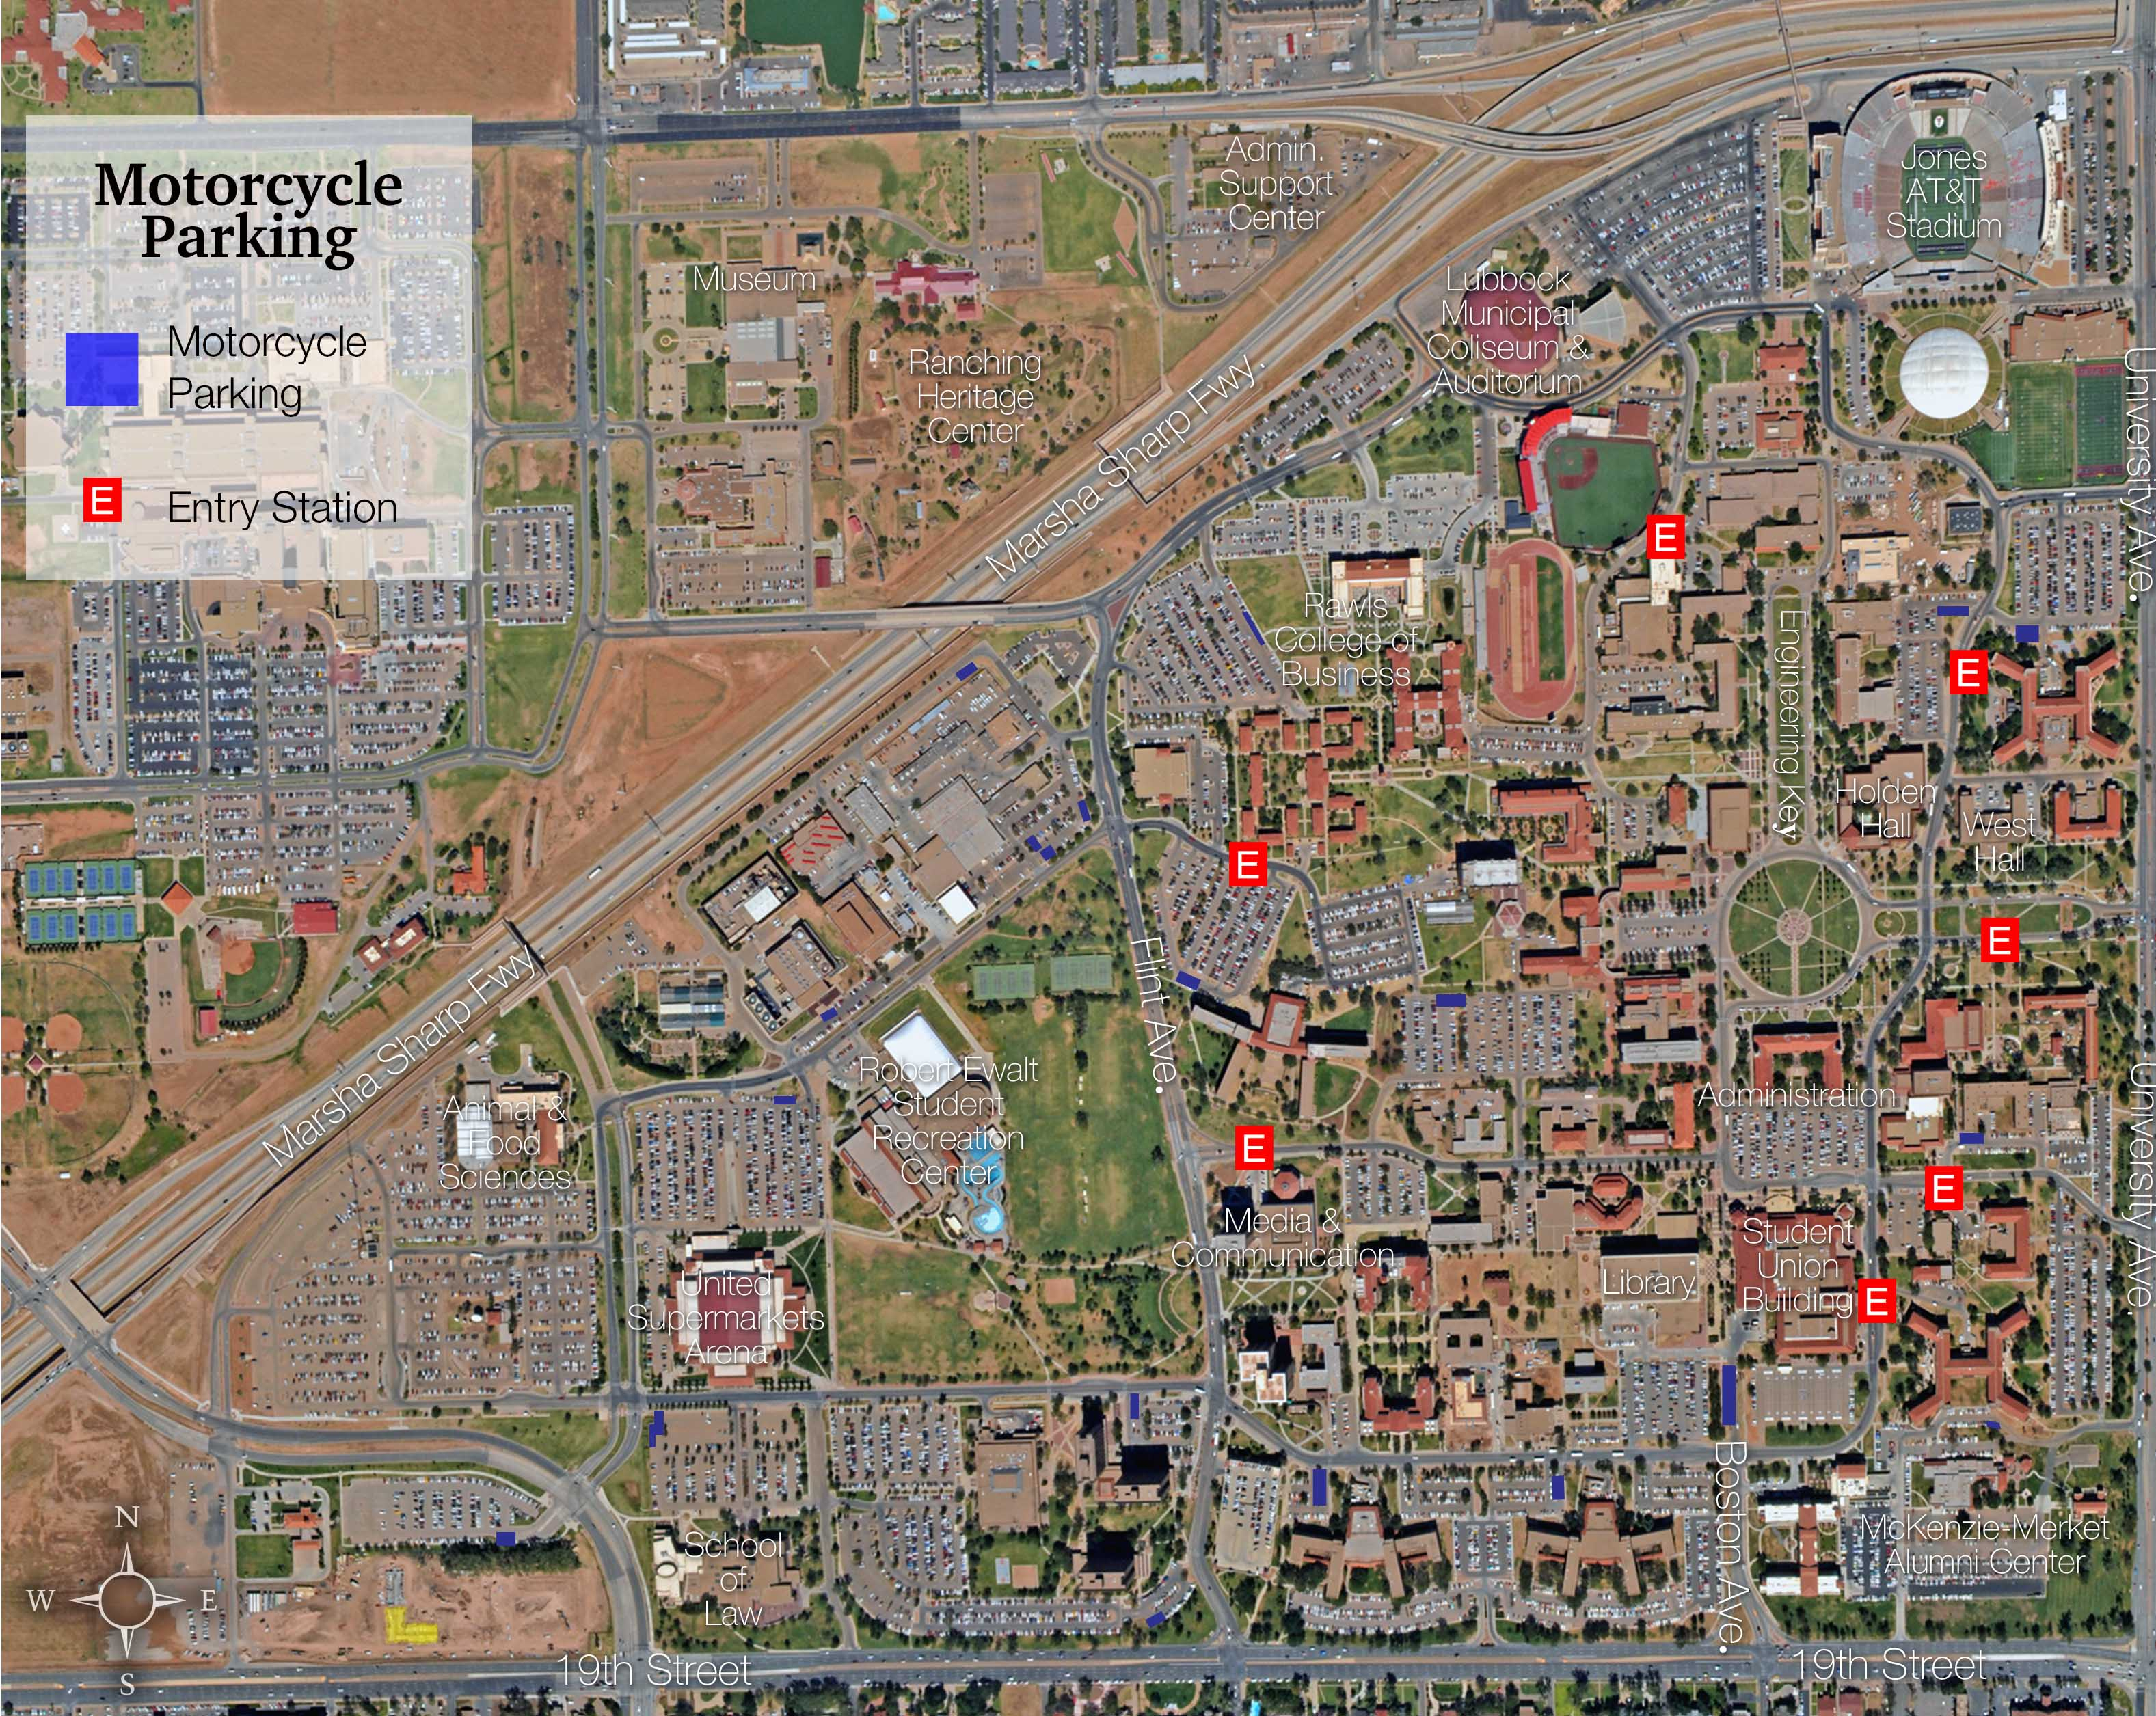 Campus Maps | Transportation & Parking Services | Ttu - Texas Tech Campus Map